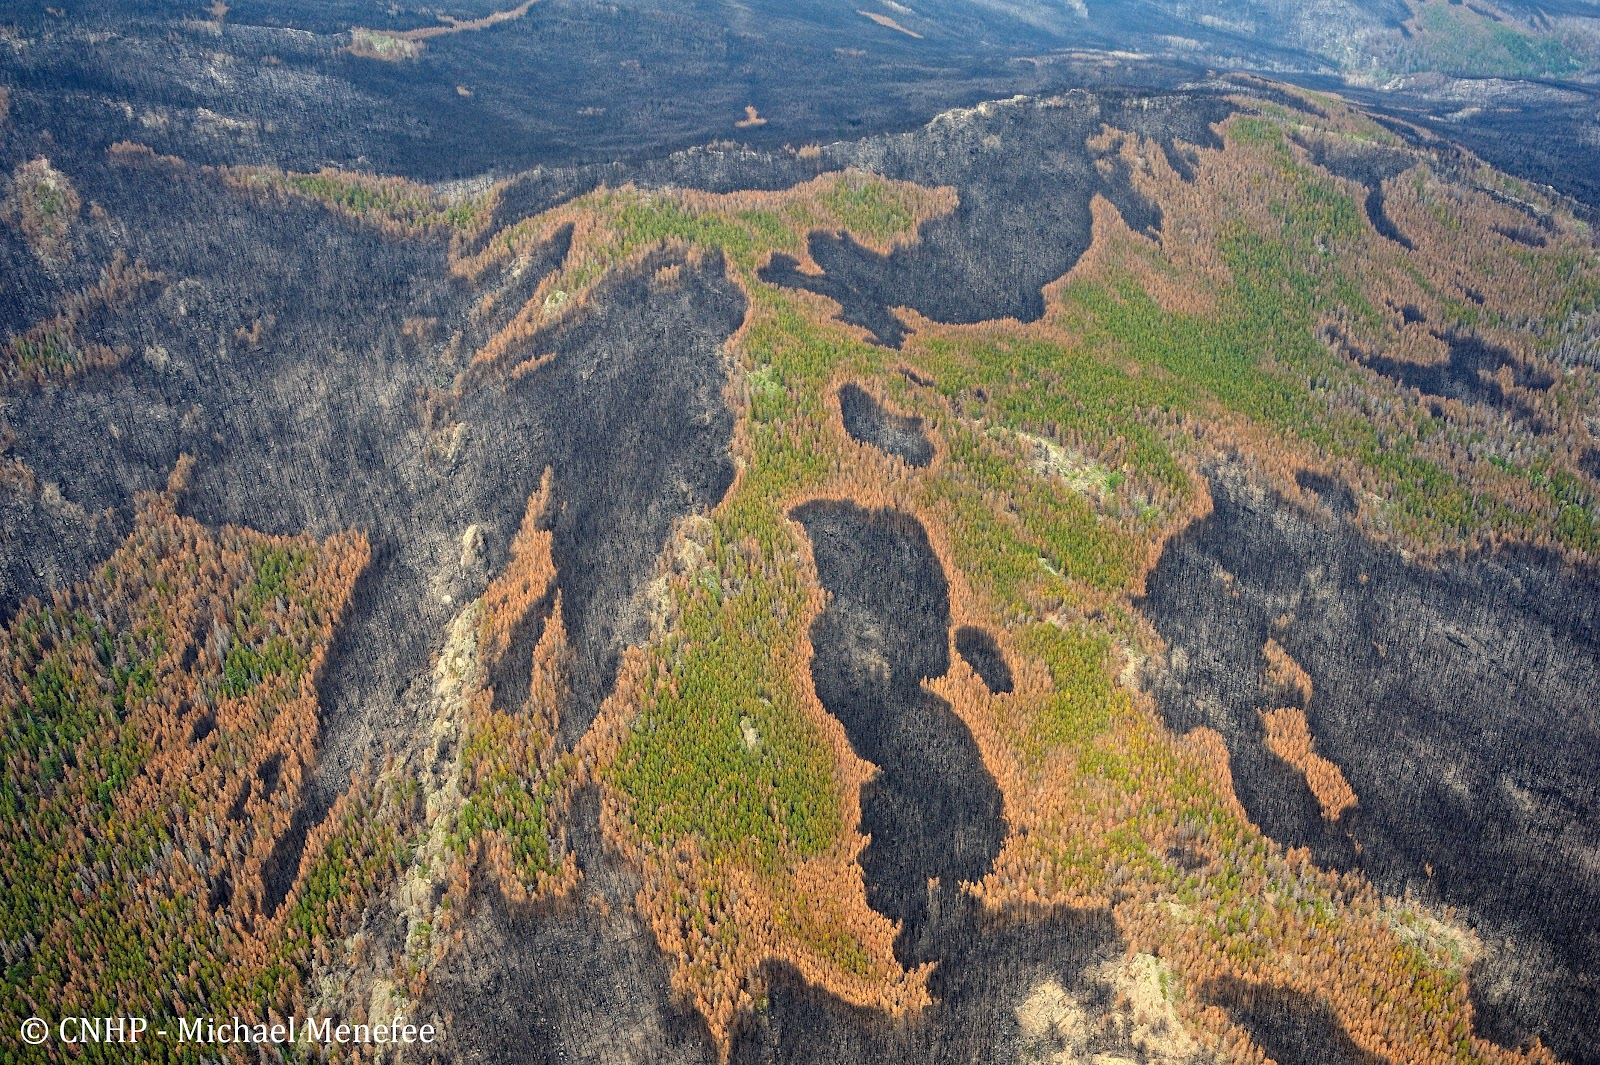 West White Pine Mountain after wildfire from the air.